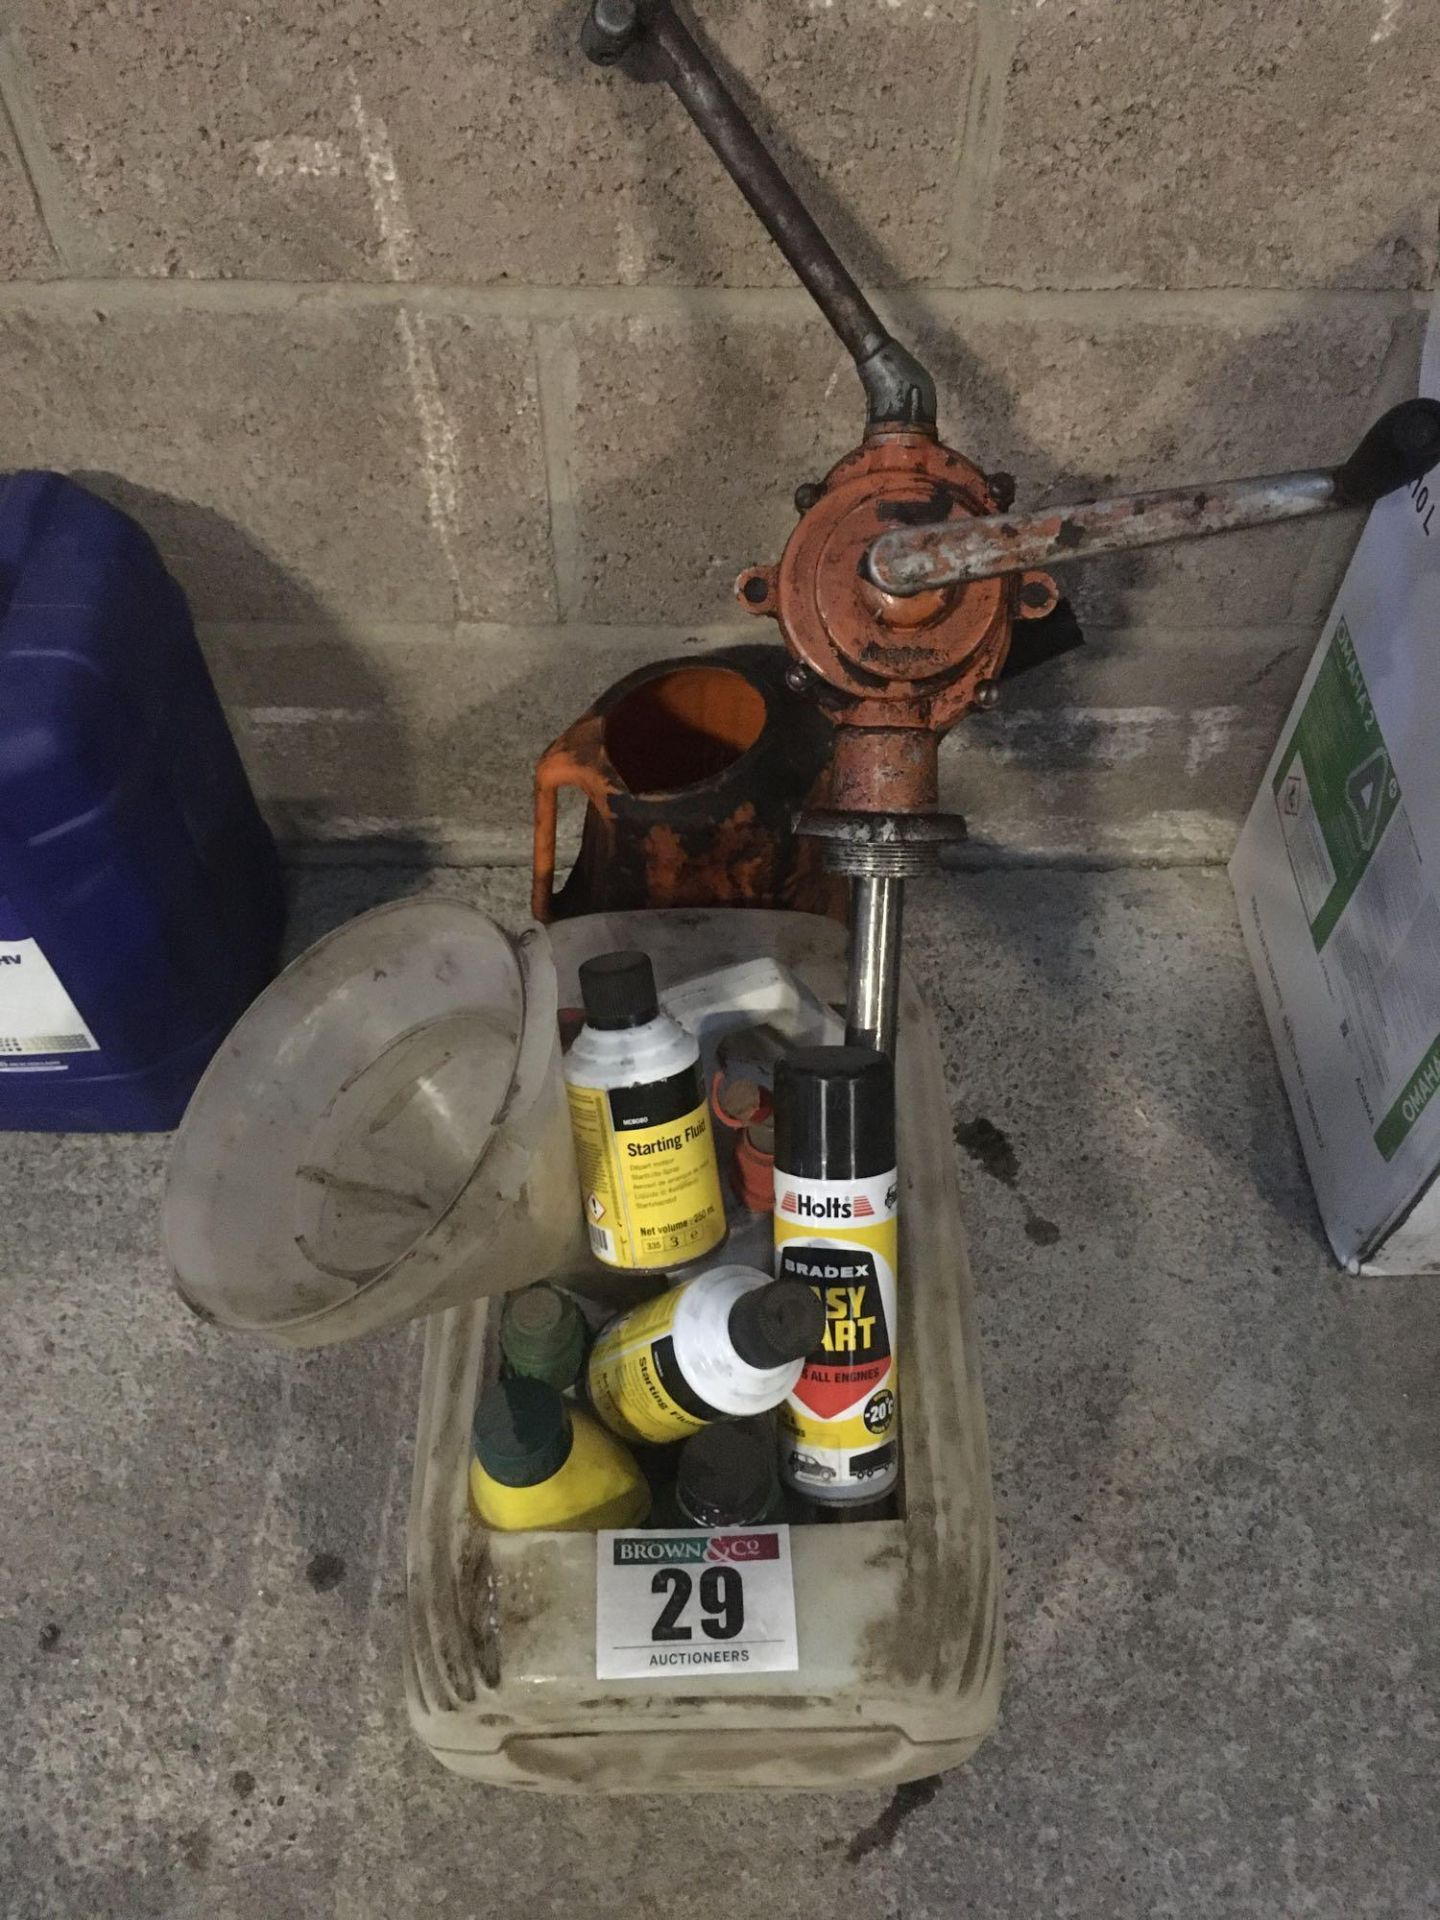 Assorted oils, starting fluid, oil pumps and funnels etc